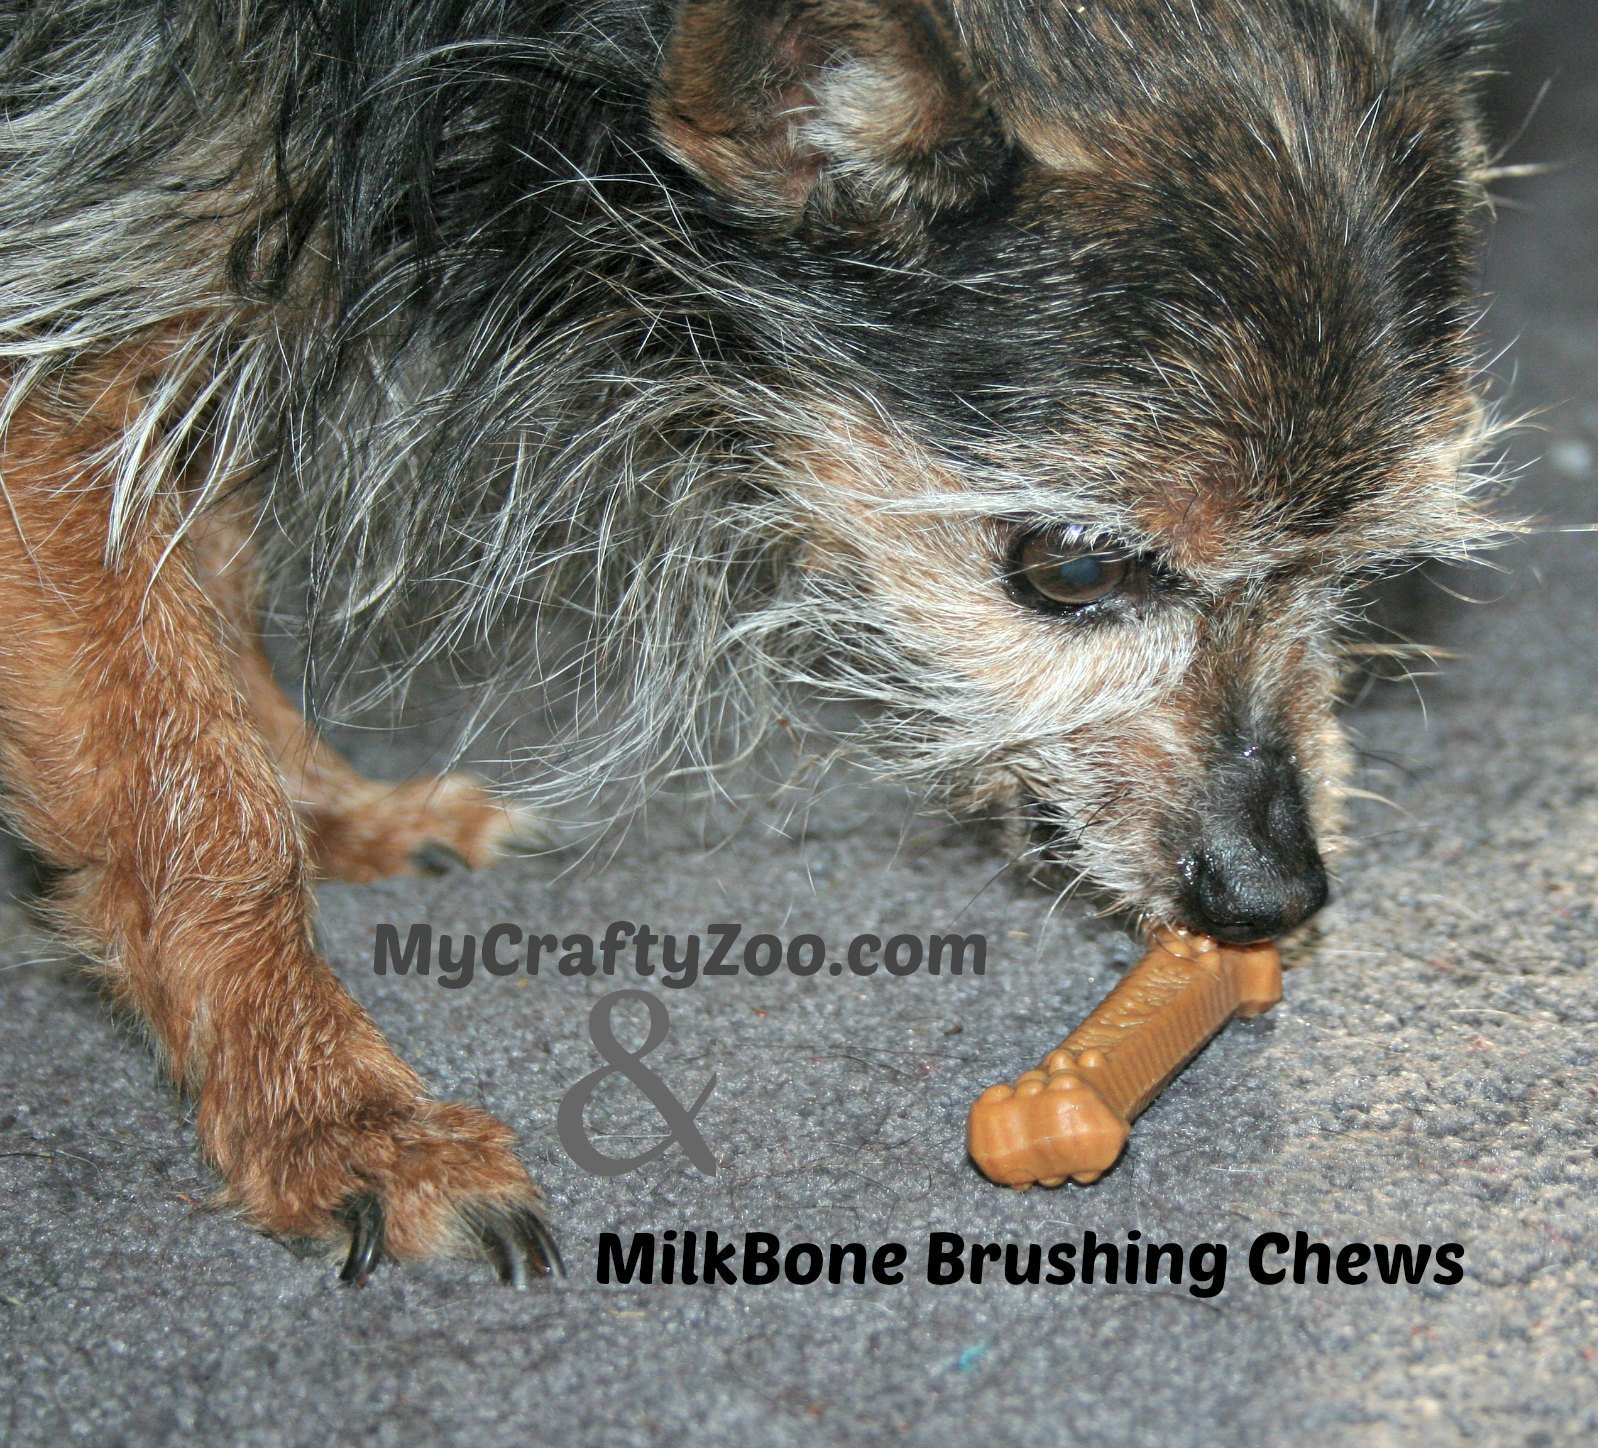 MilkBone Brushing Chews Review